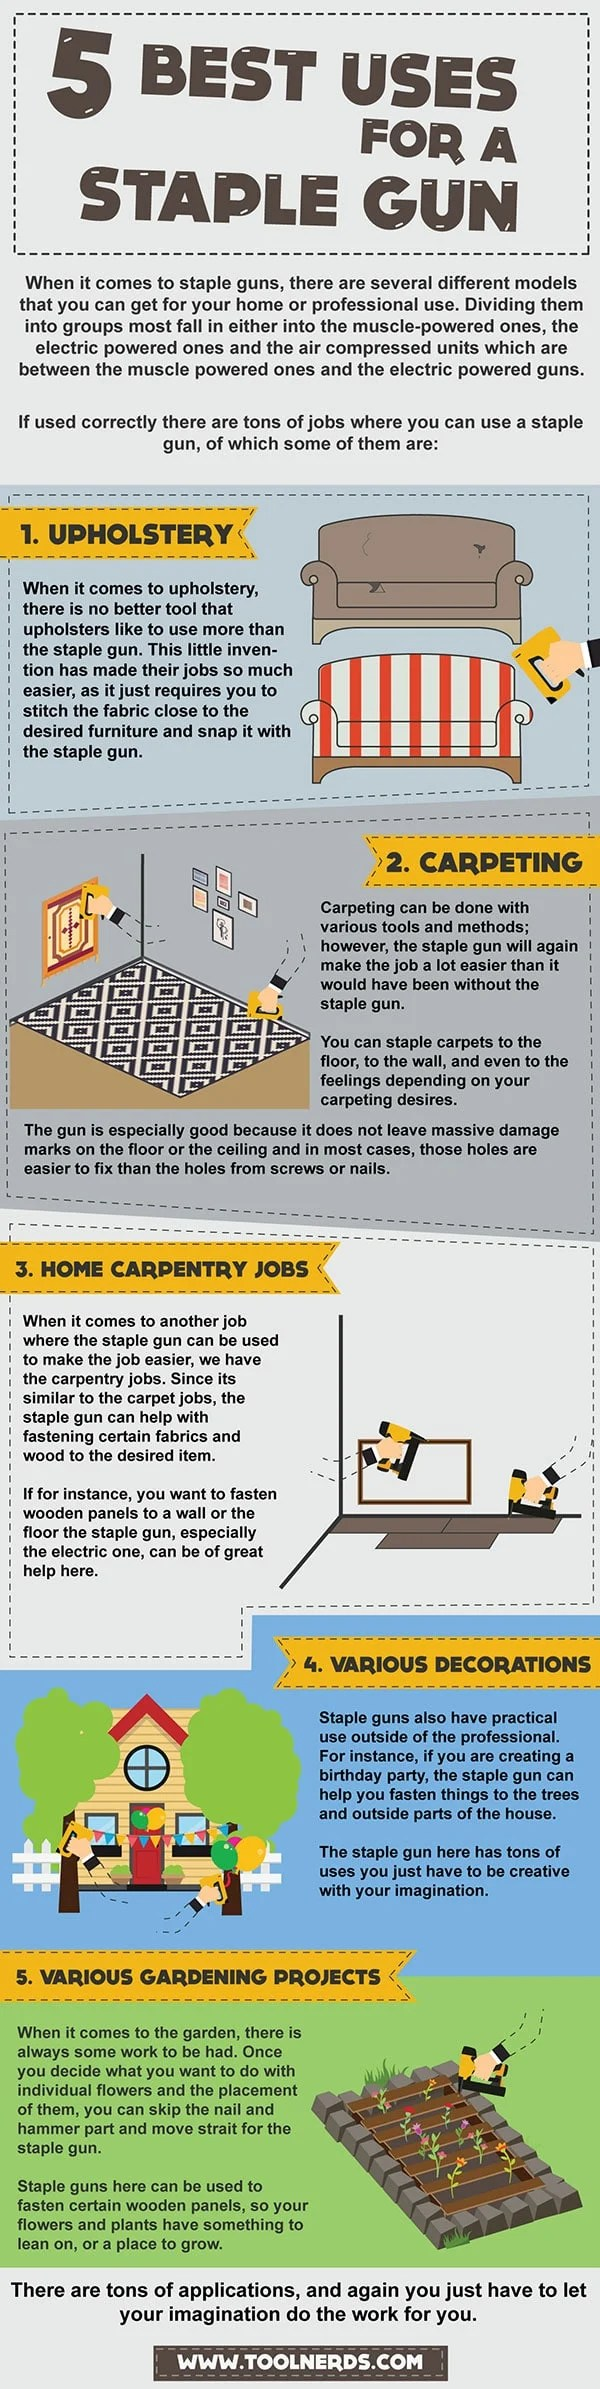 best uses for a staple gun - infographic